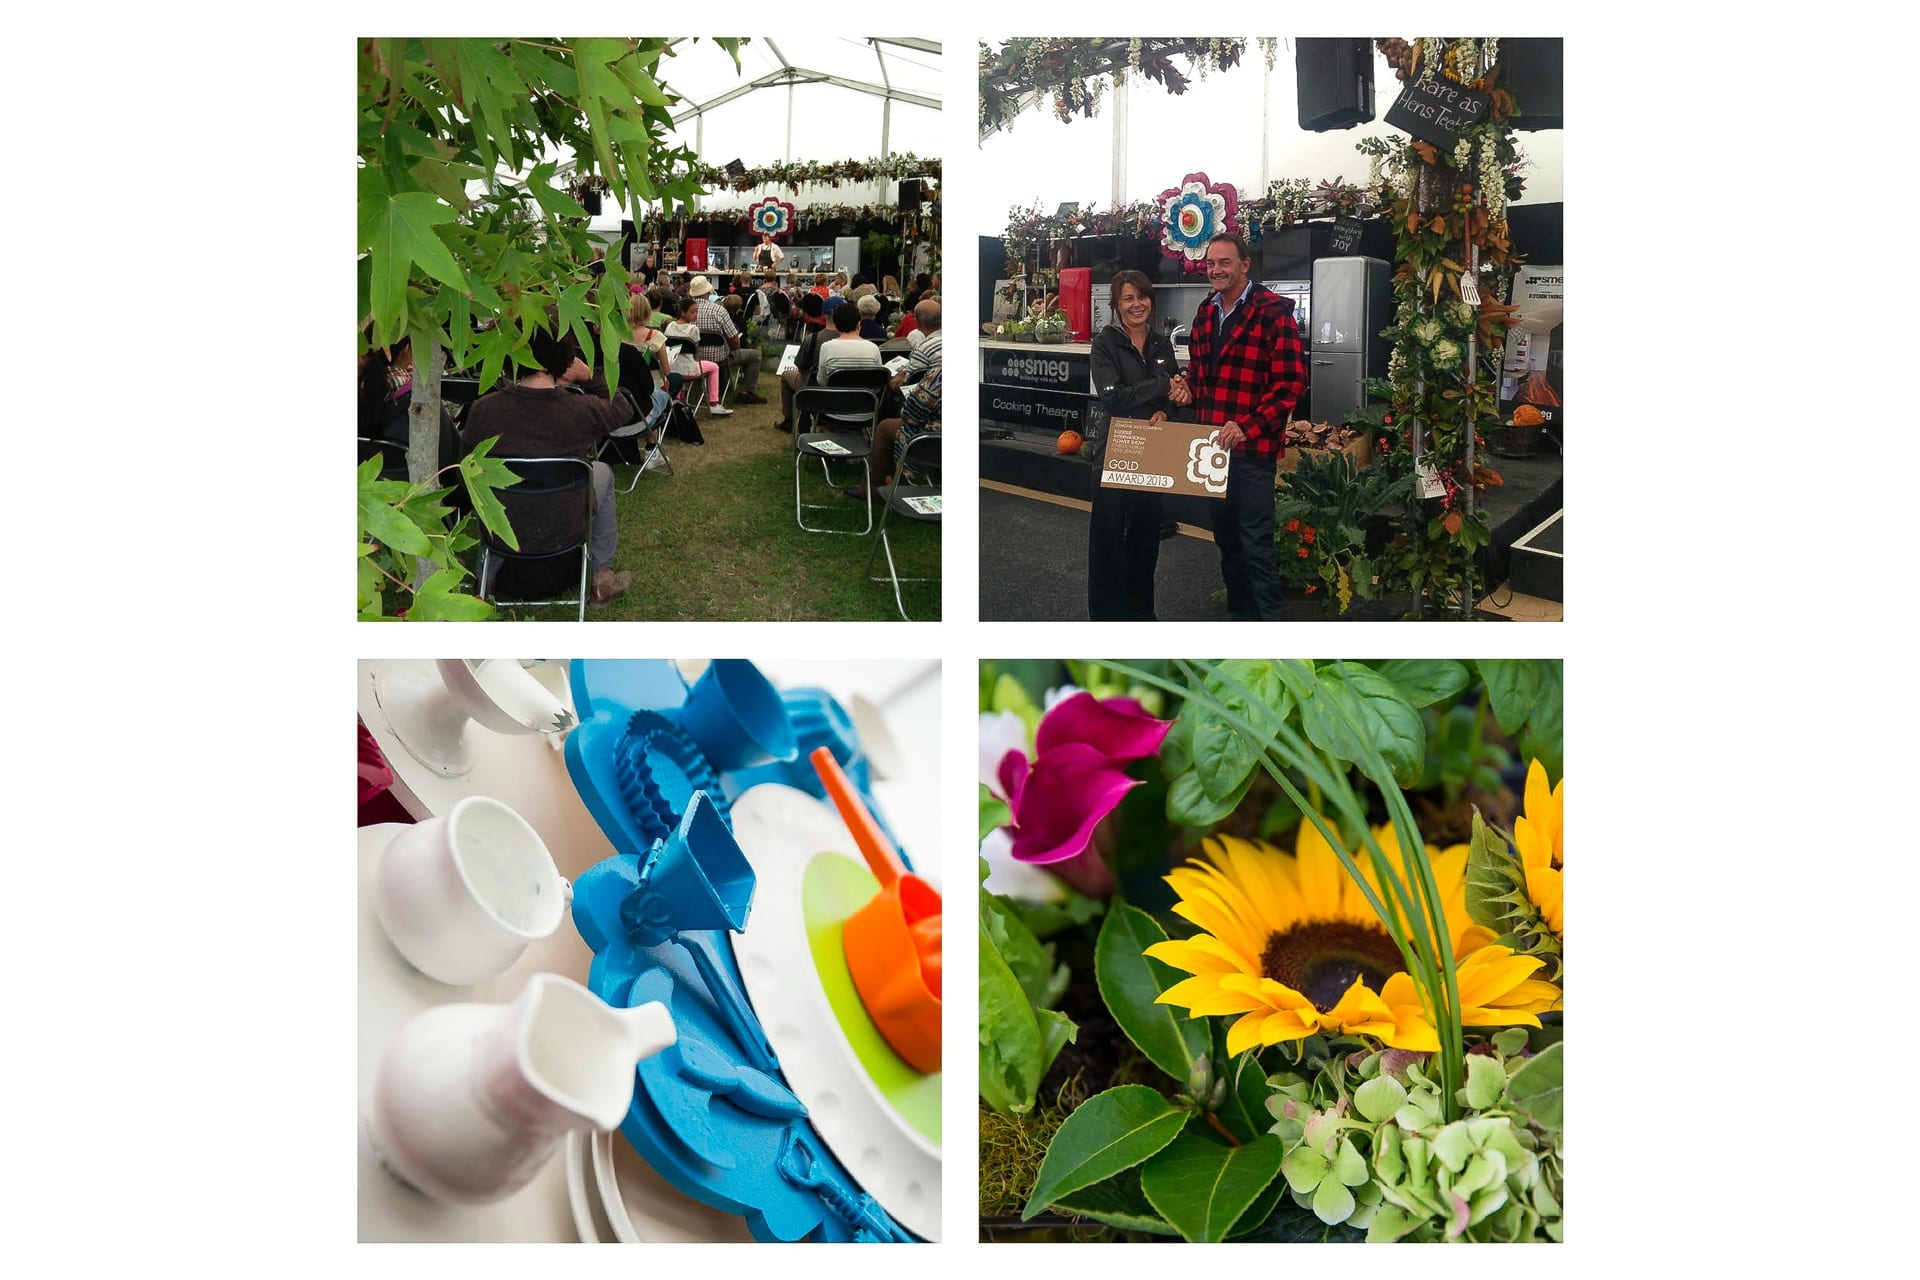 Kim Chan Events|Ellerslie Flower Show , Edible Ellerslie logo constructed of cutlery, and kitchen display, honorary Gold award presentation